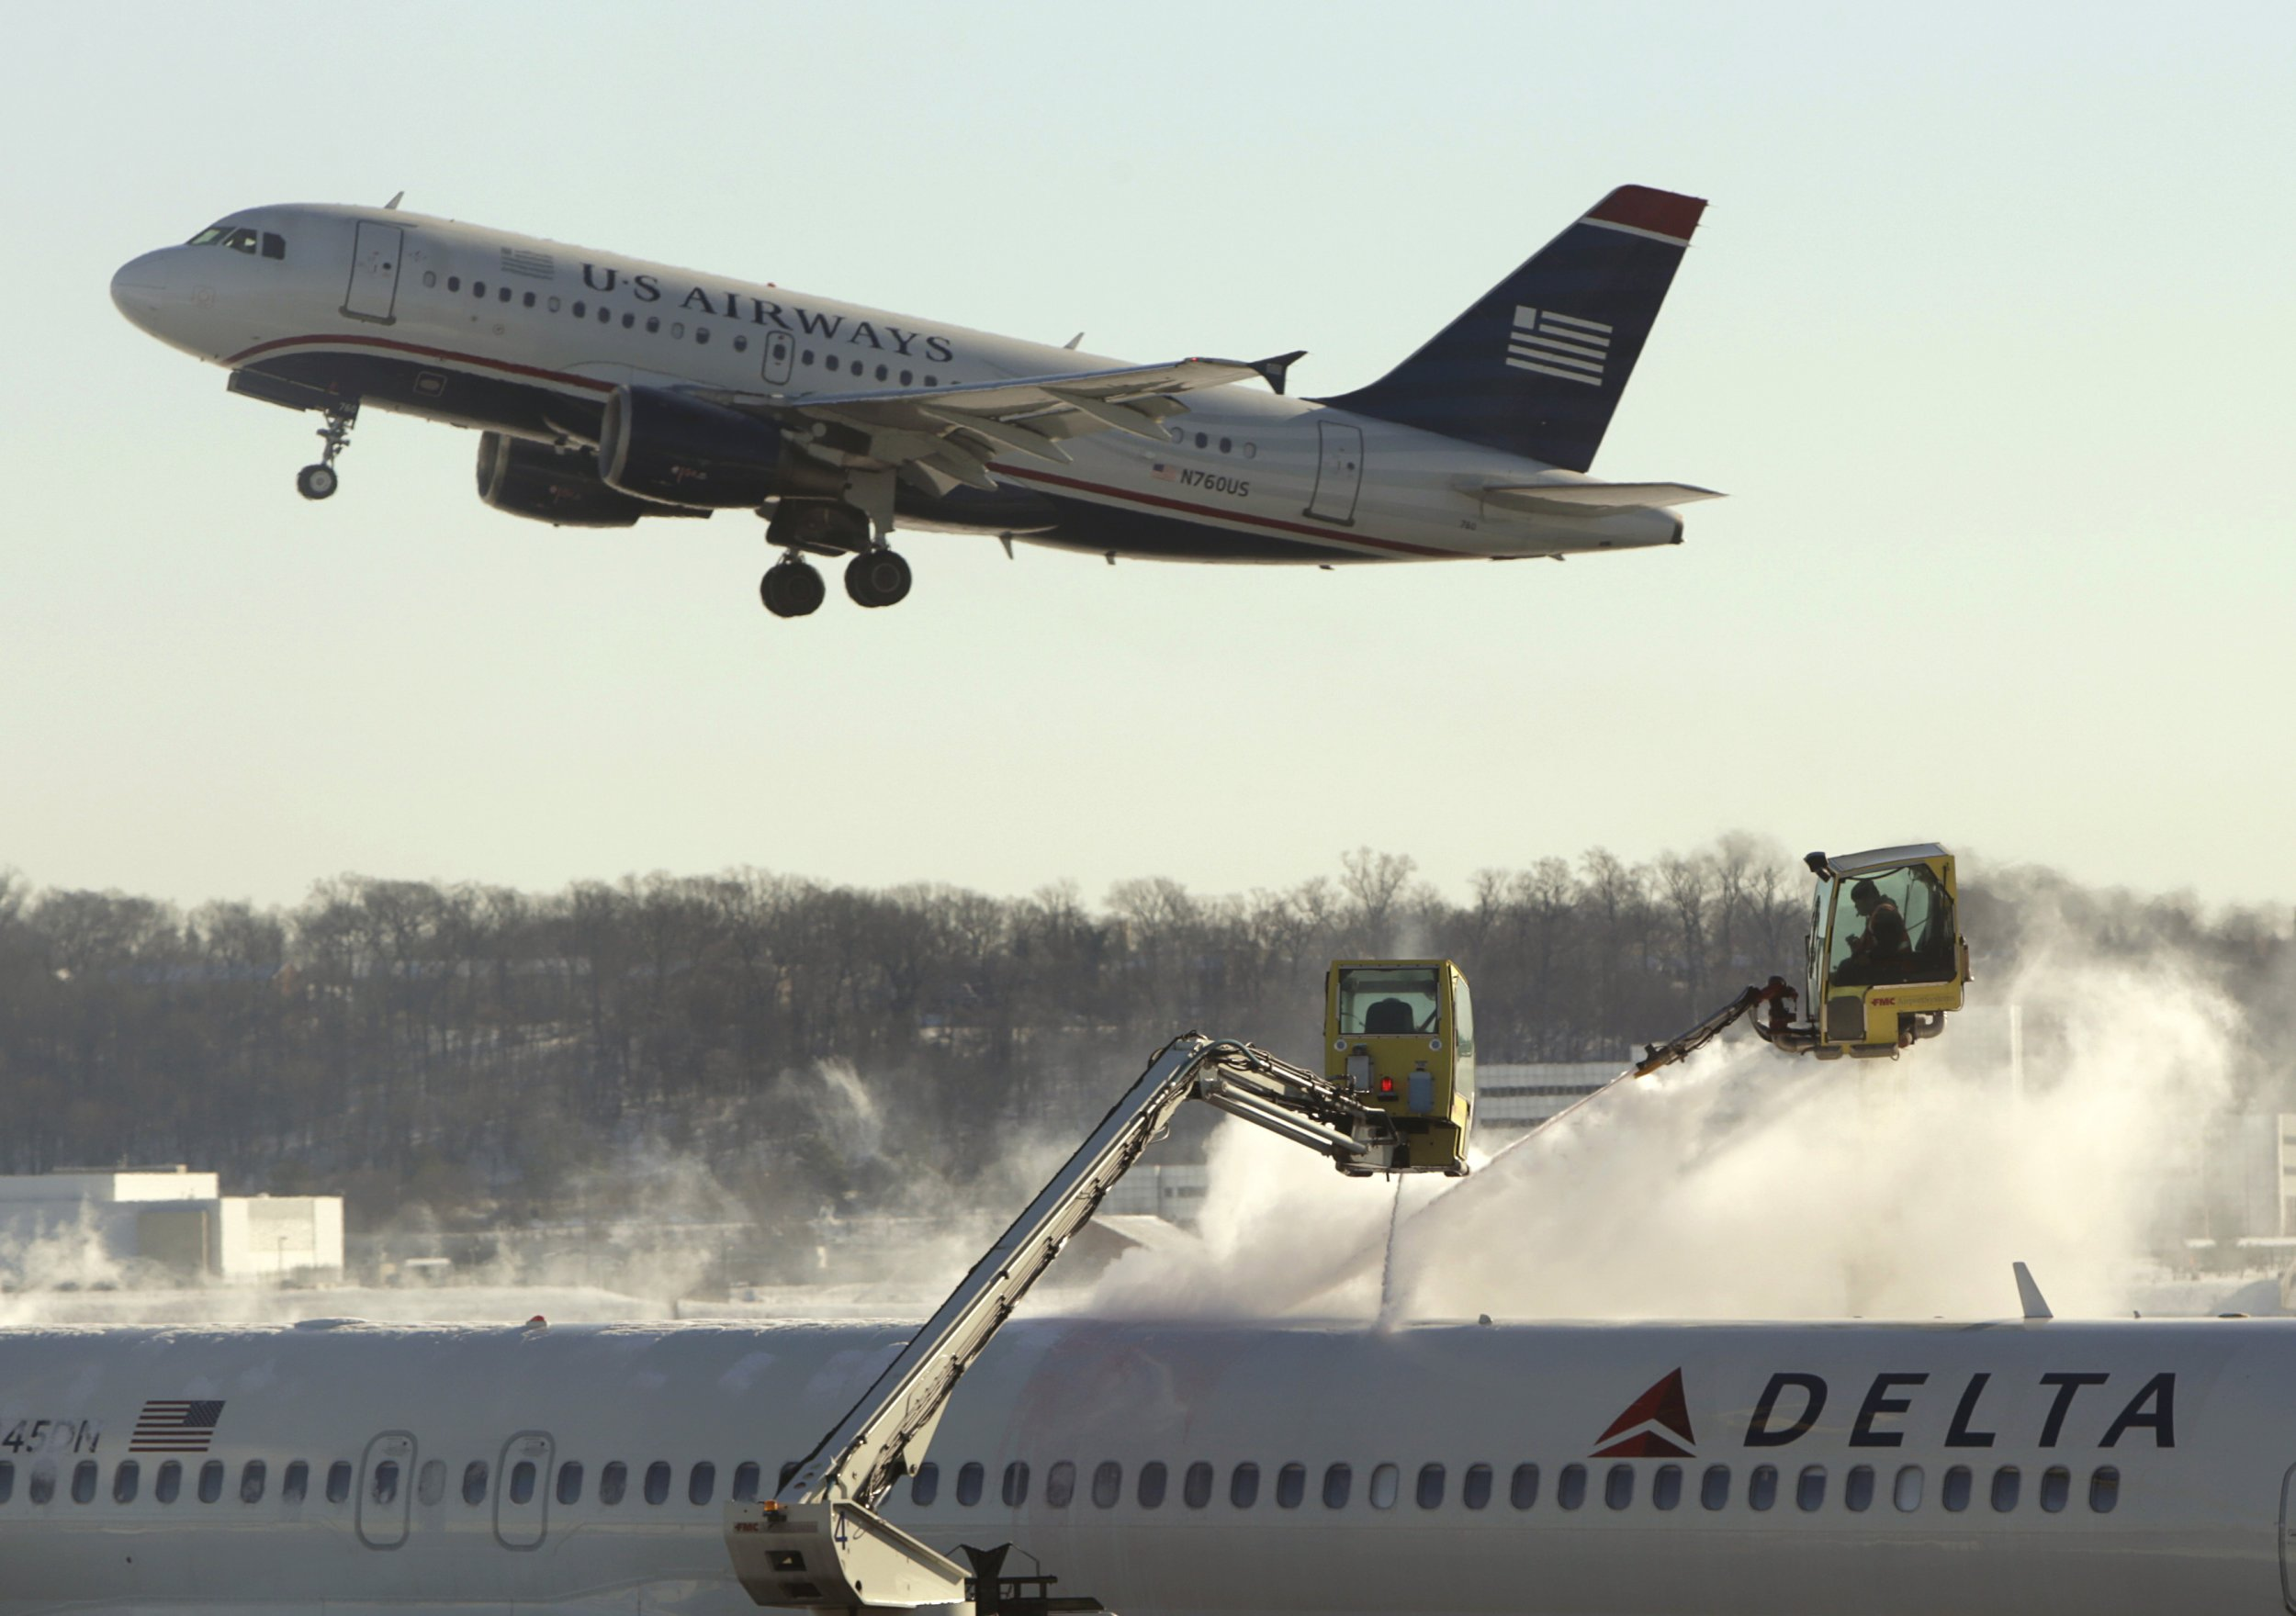 0316_Slippery_Sluglike_Airplanes_Could_End_De-icing_Sprays_01